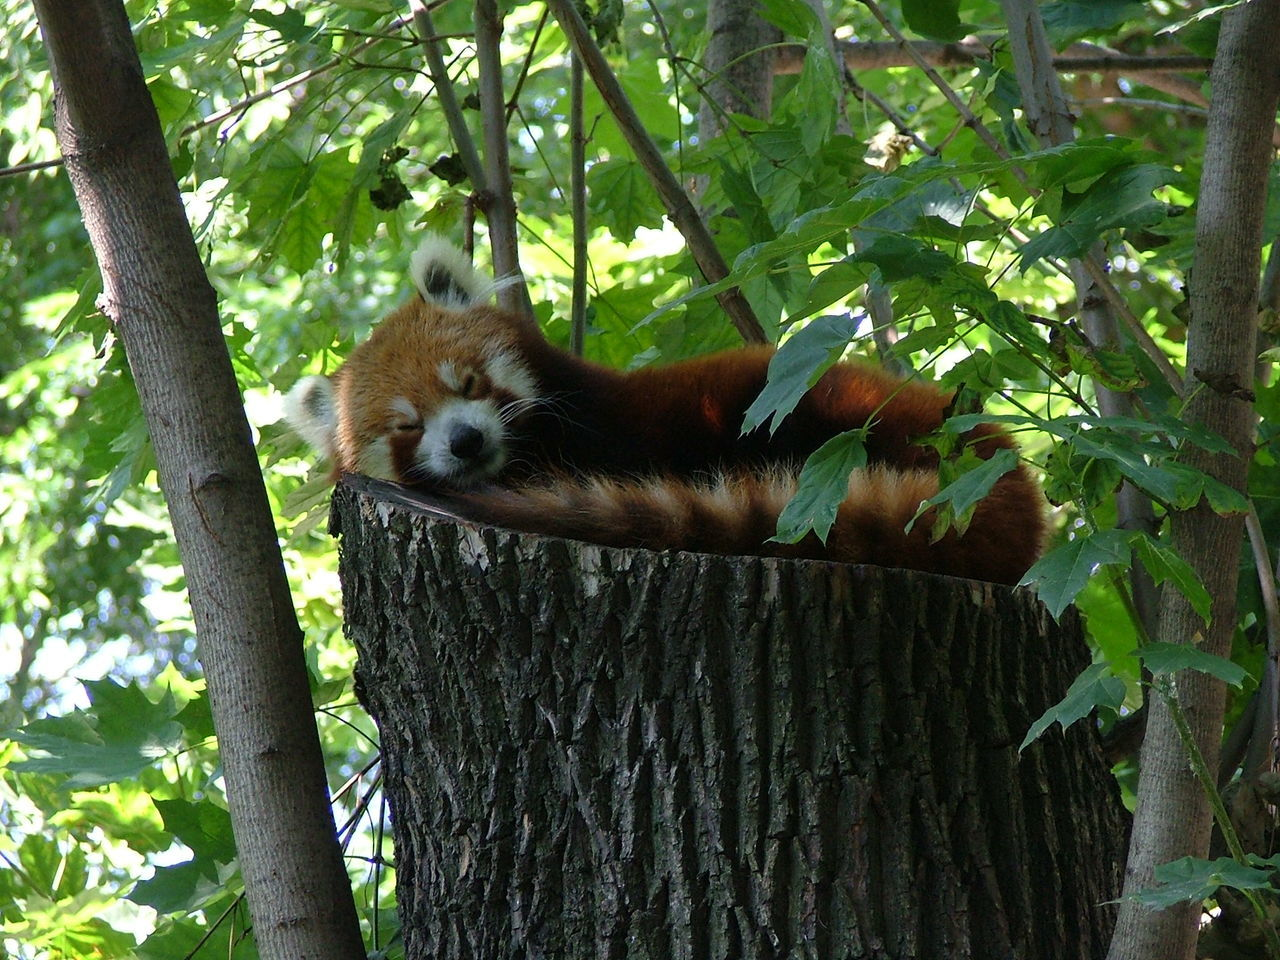 Animal Themes Animal Wildlife Animals In The Wild Leaf Mammal Nature One Animal Red Panda Red Panda Bear Relax Relaxation Relaxing Relaxing Time Tree Vörös Panda Zoo Of Budapest